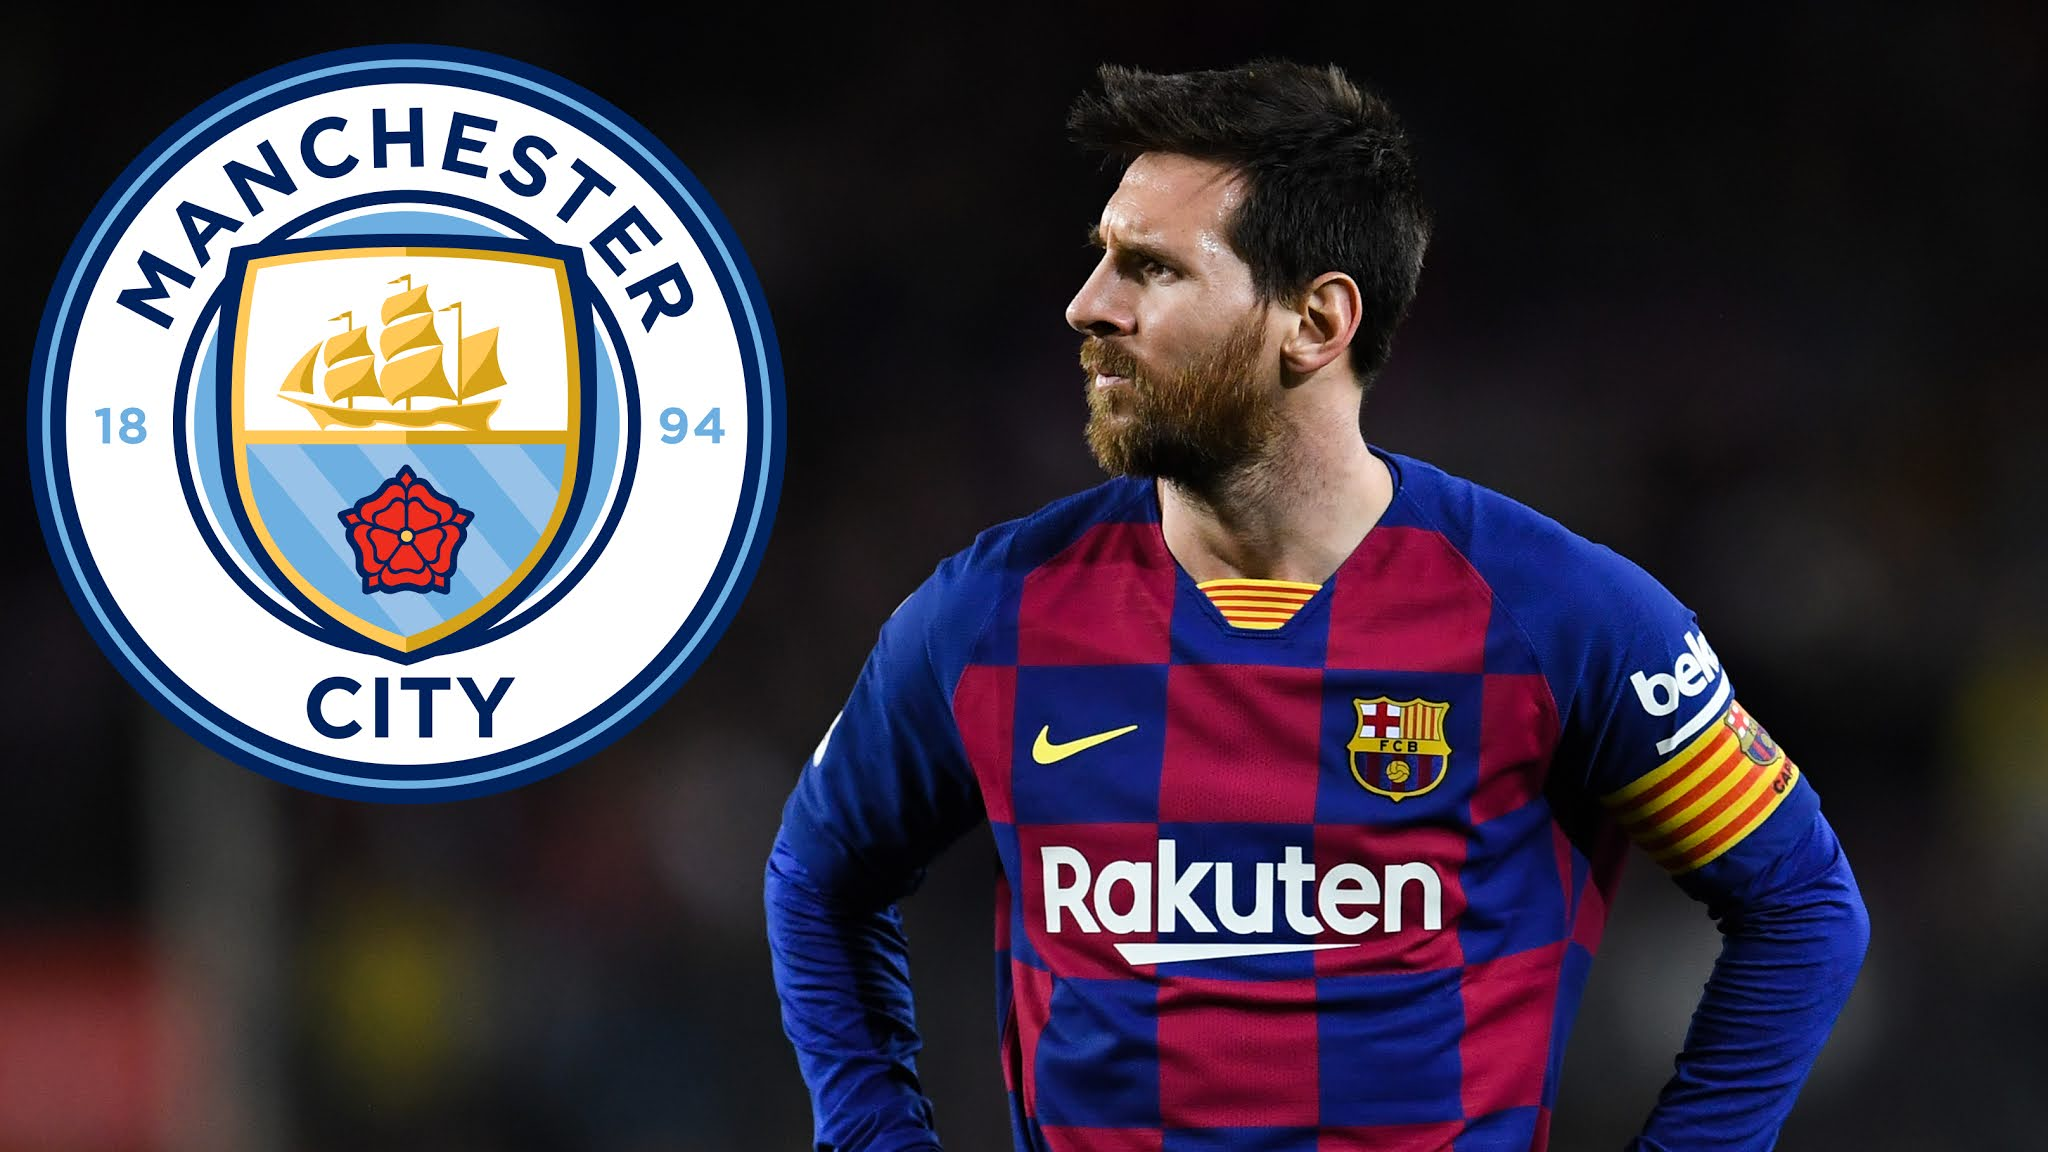 Manchester City Lionel Messi FC Barcelona